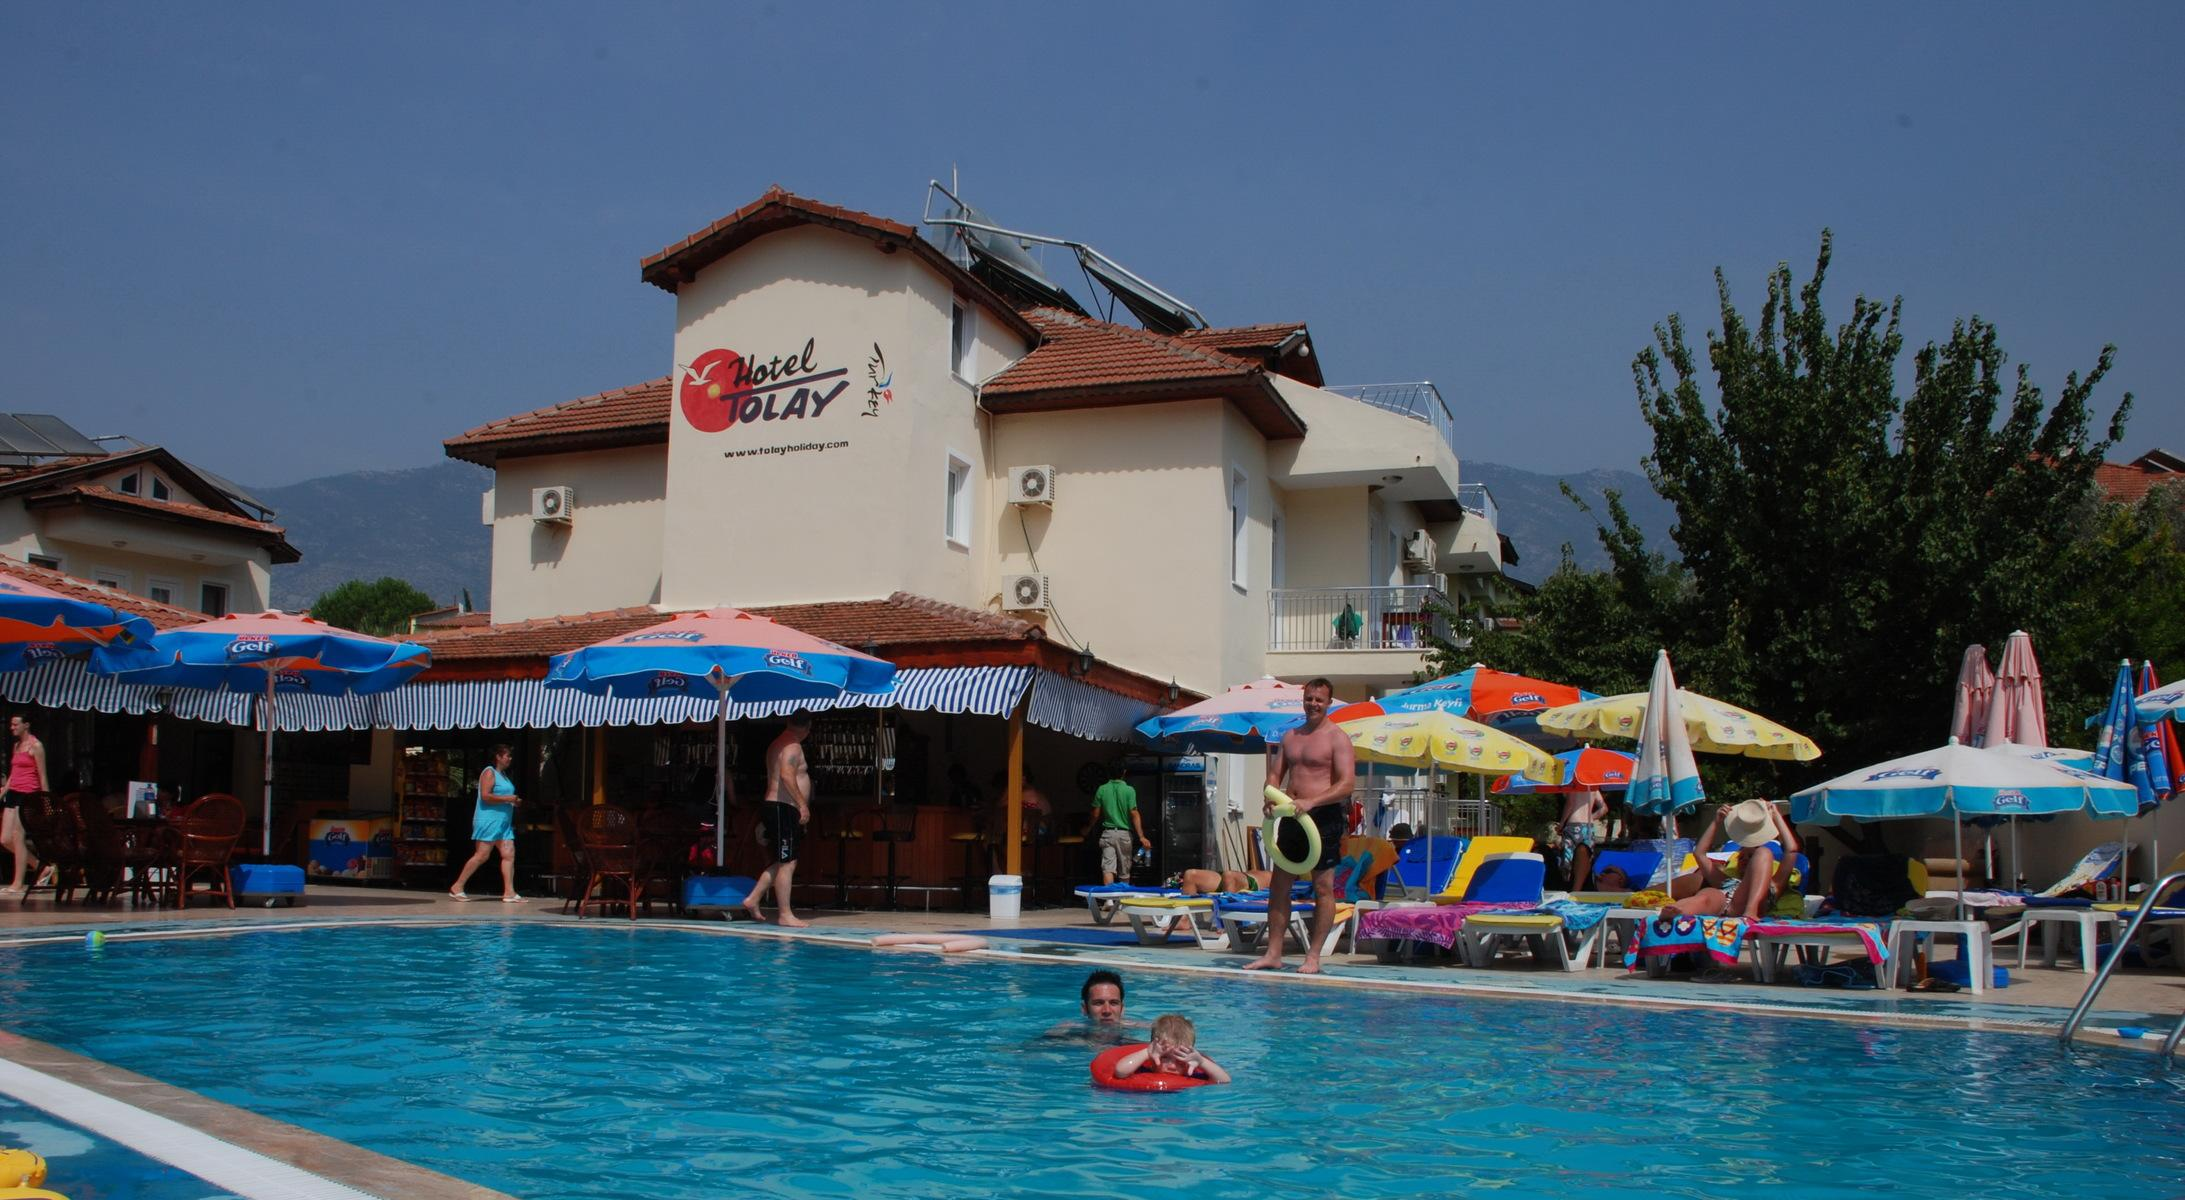 Tolay Hotel in Hisaronu, Dalaman, Turkey